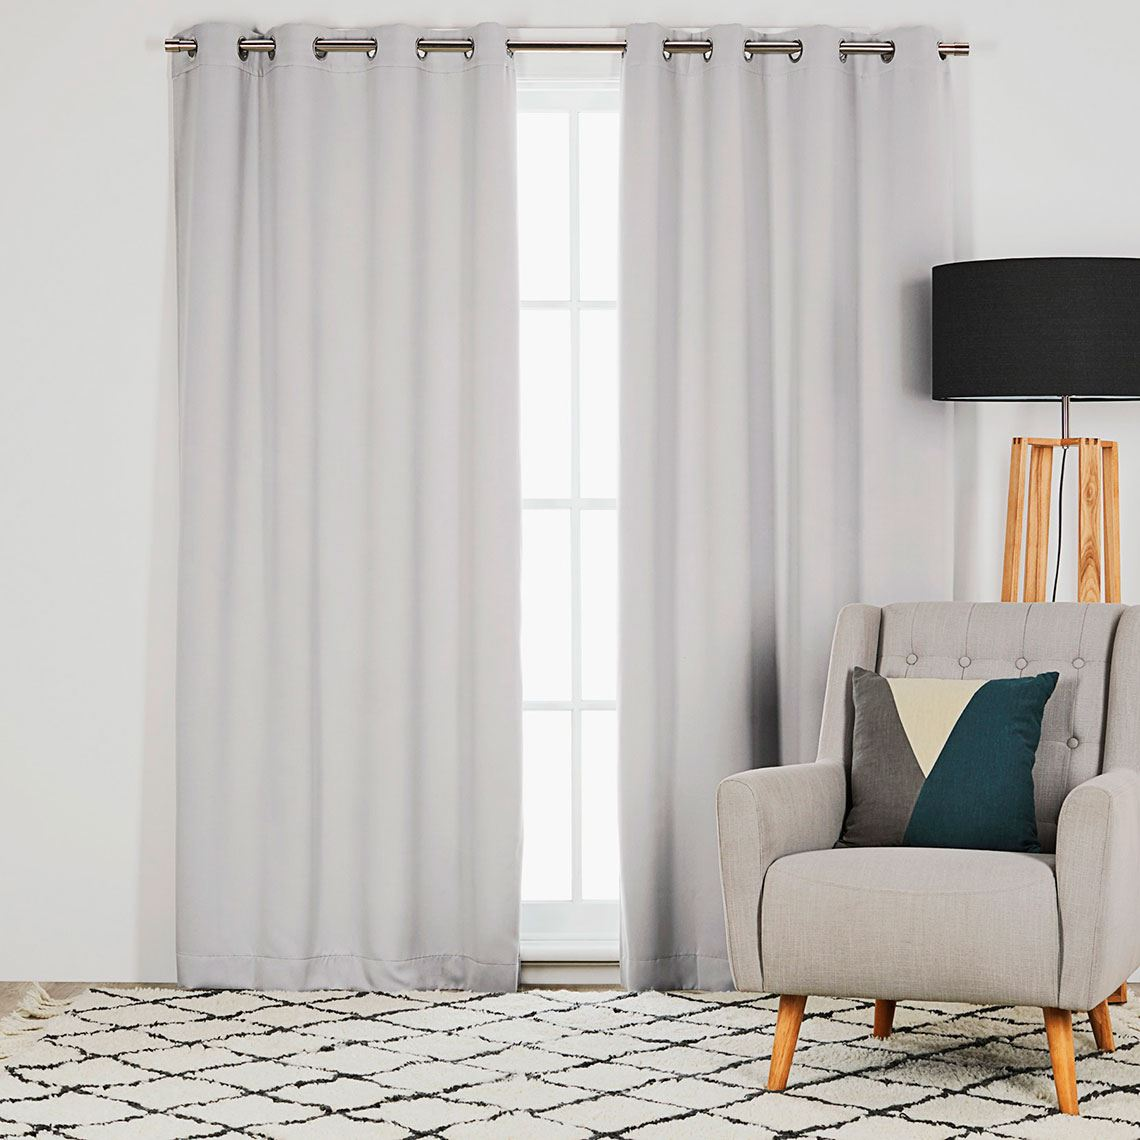 Barlow Room Darkening Eyelet Curtain Size W 135cm x D 0cm x H 230cm in Silver 100% Polyester/Acrylic Flock Coating/Stainless Steel Freedom by Freedom, a Curtains for sale on Style Sourcebook